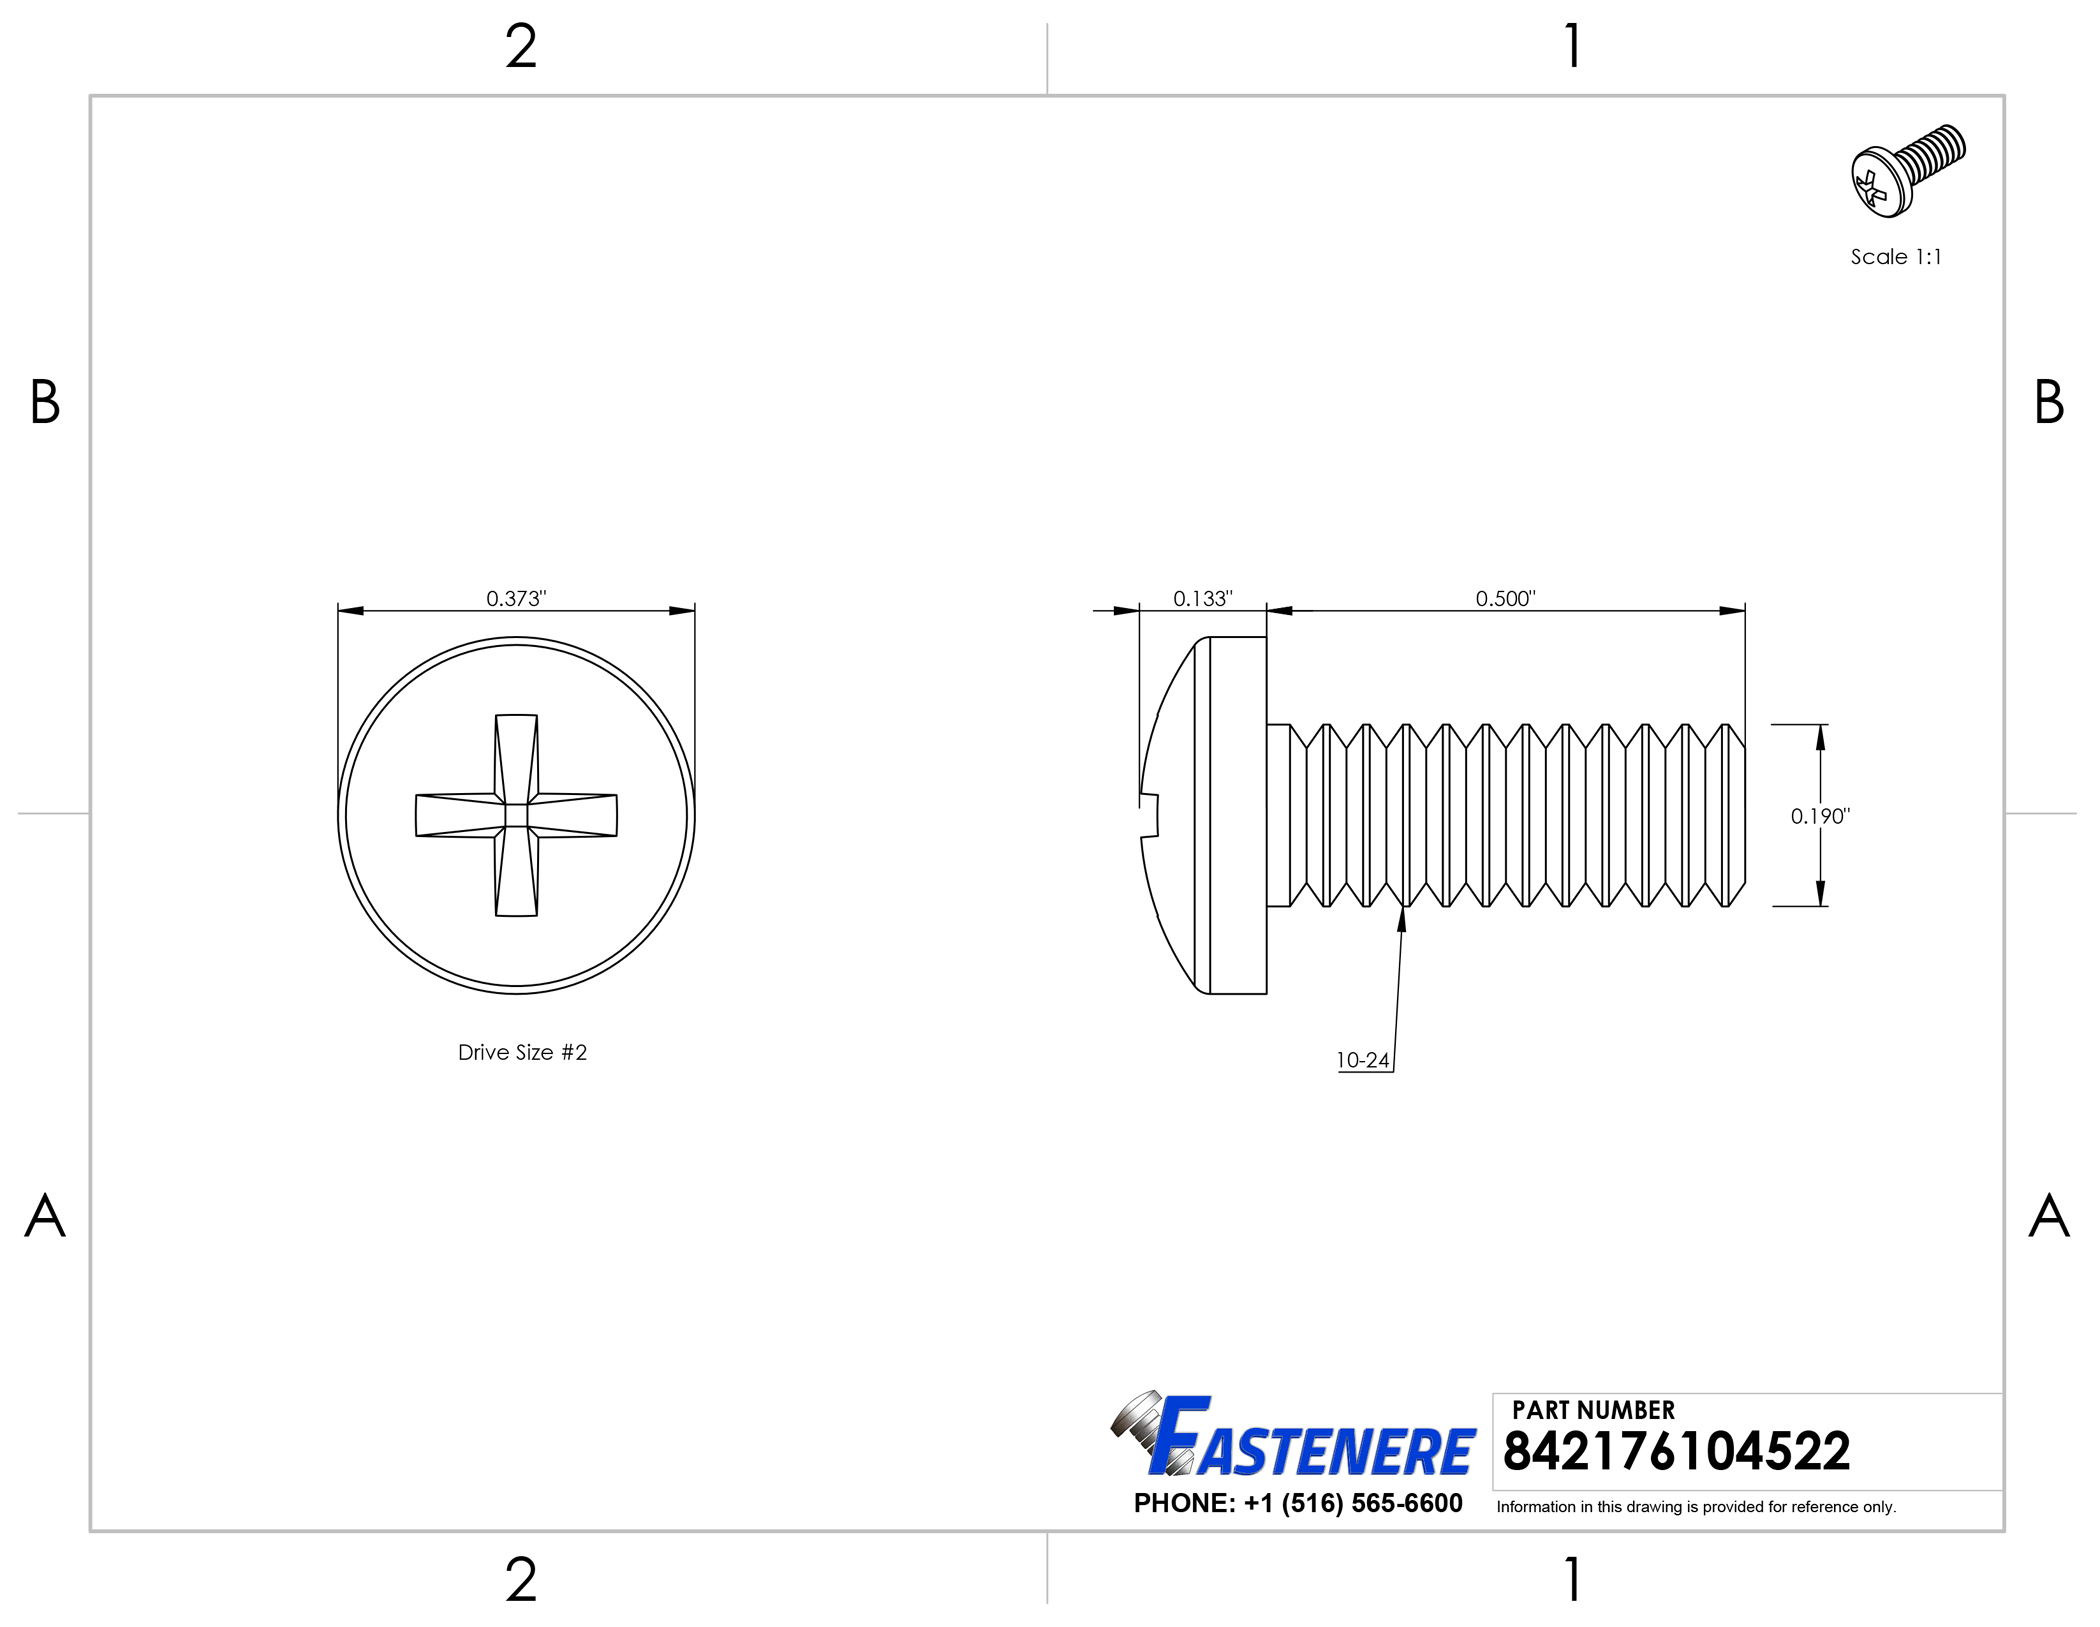 Plain Finish 1 Length Stainless Steel Machine Screw #12-24 Threads Pack of 25 Drilled Spanner Drive Pan Head